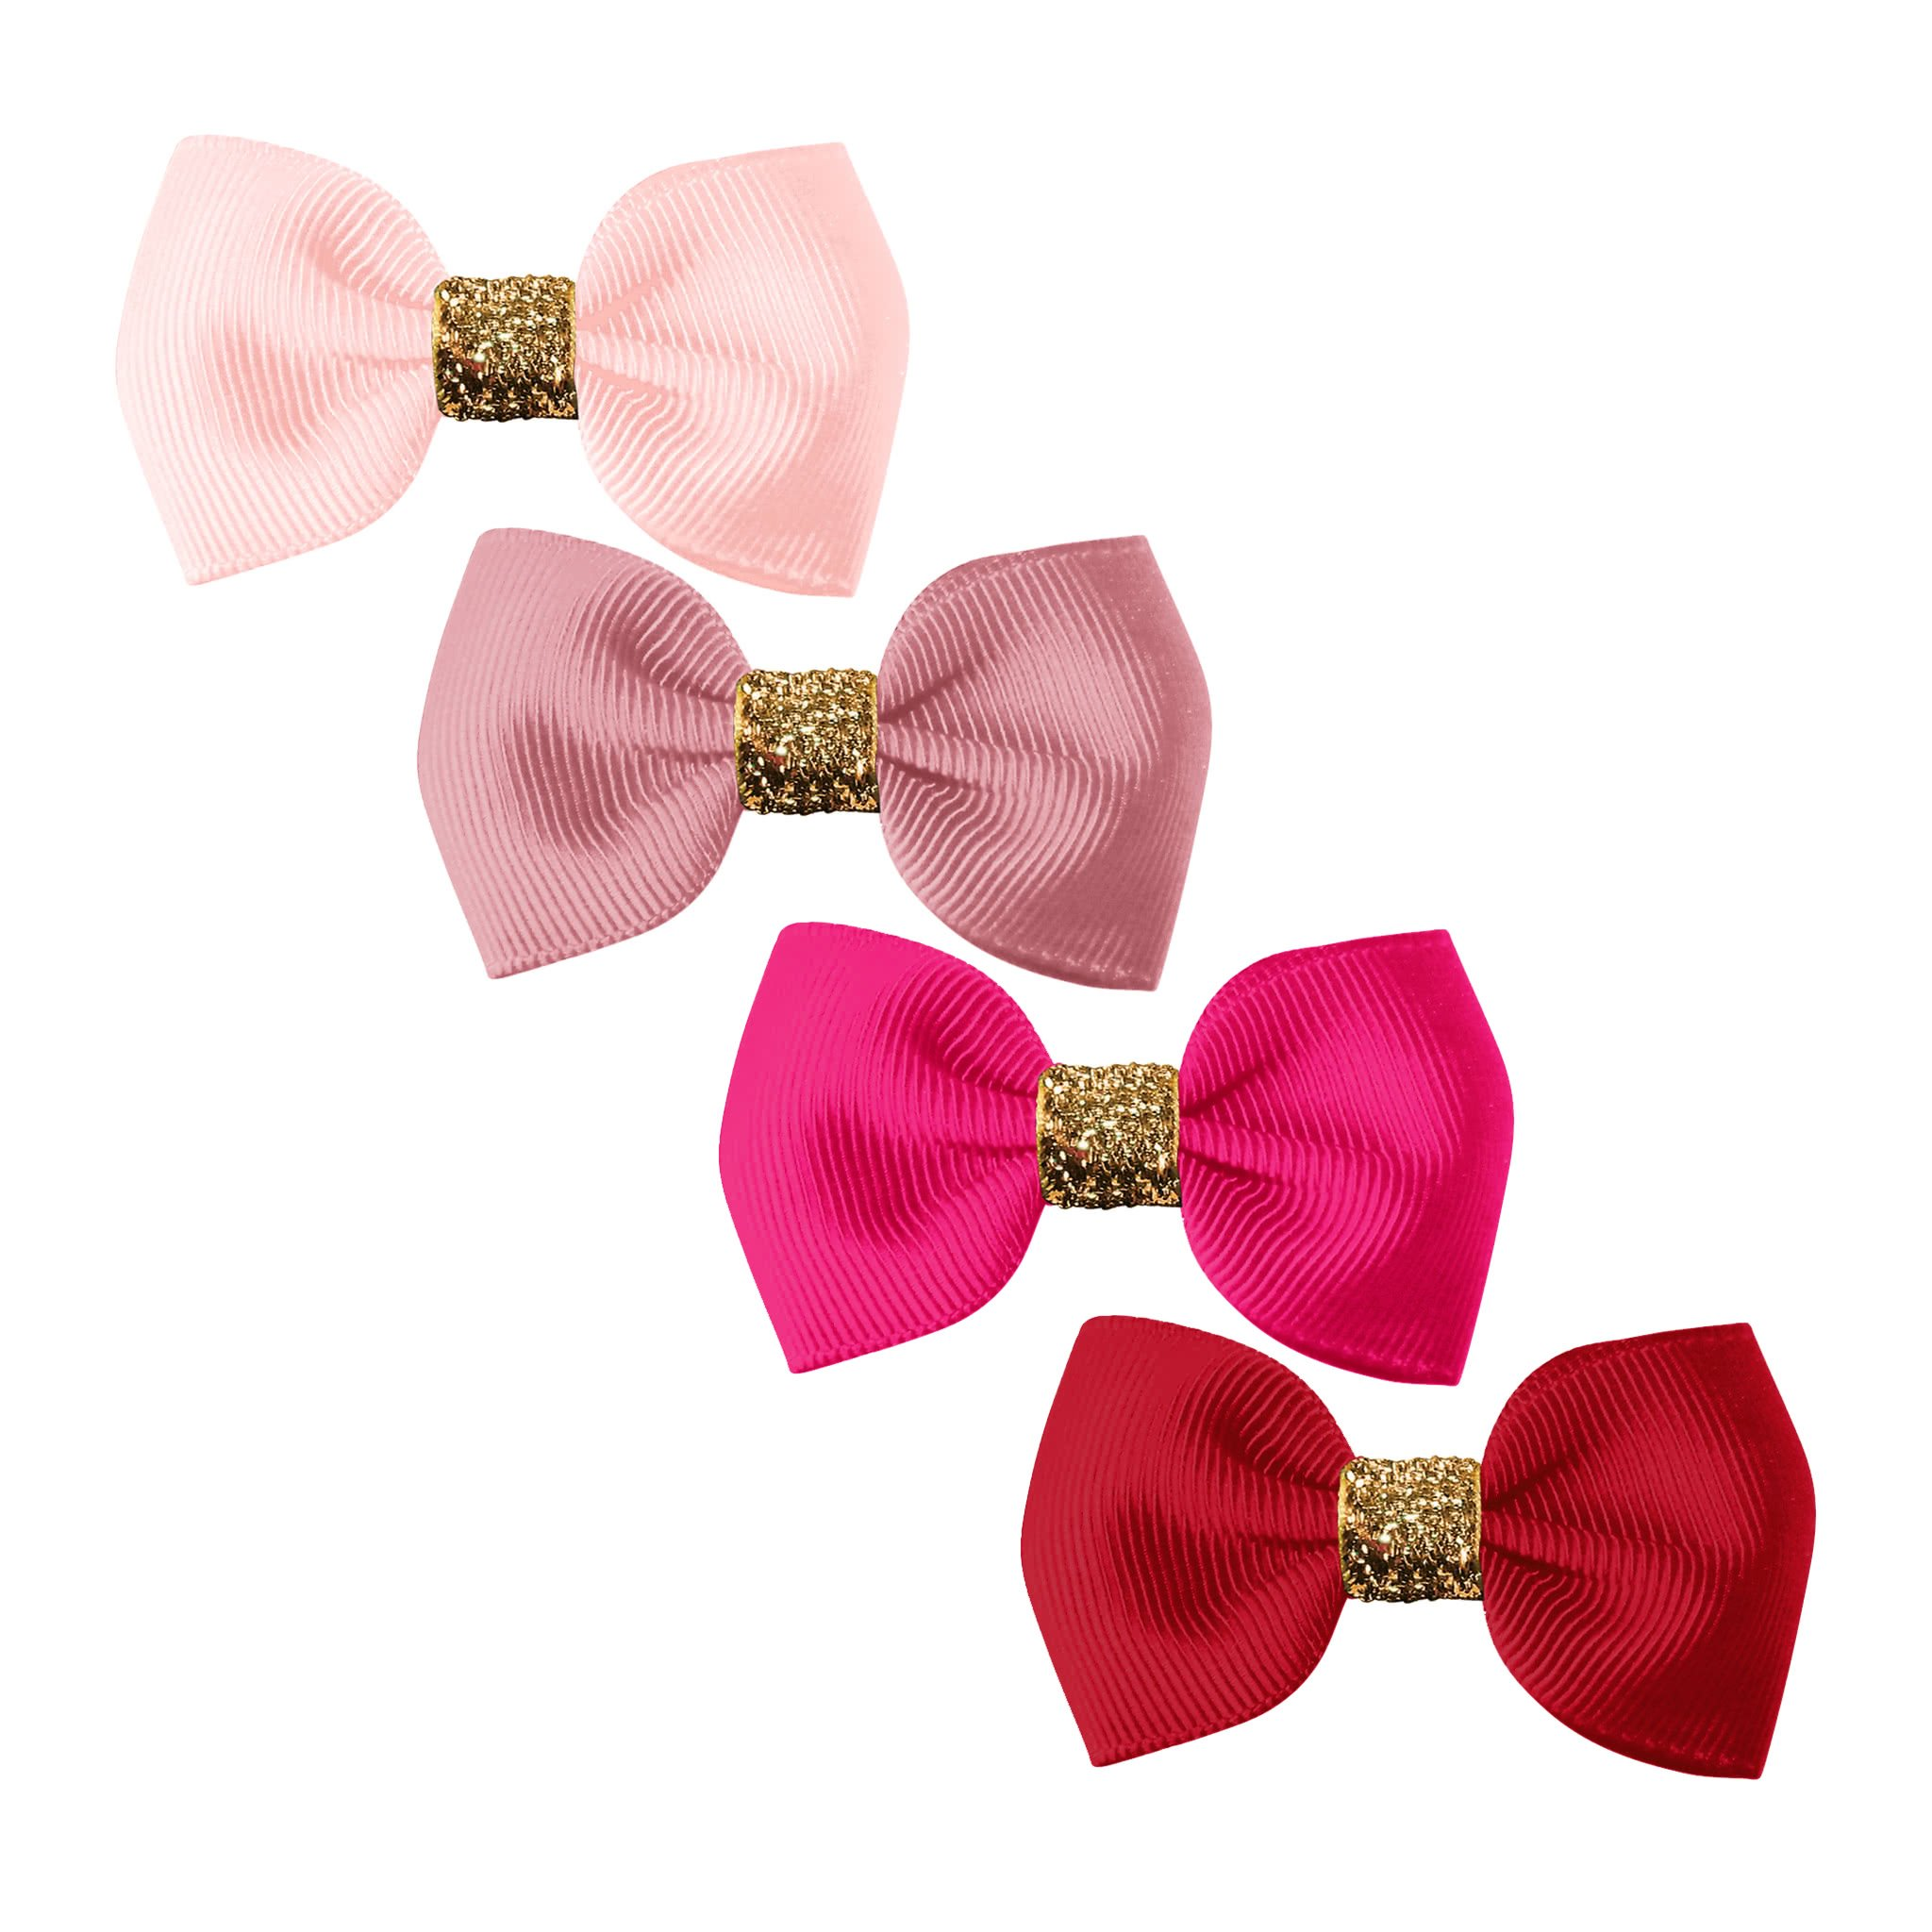 Image of Milledeux® Gift set - Gold Glitter Collection - 4 Small bowtie bows - alligator clip - Pinks